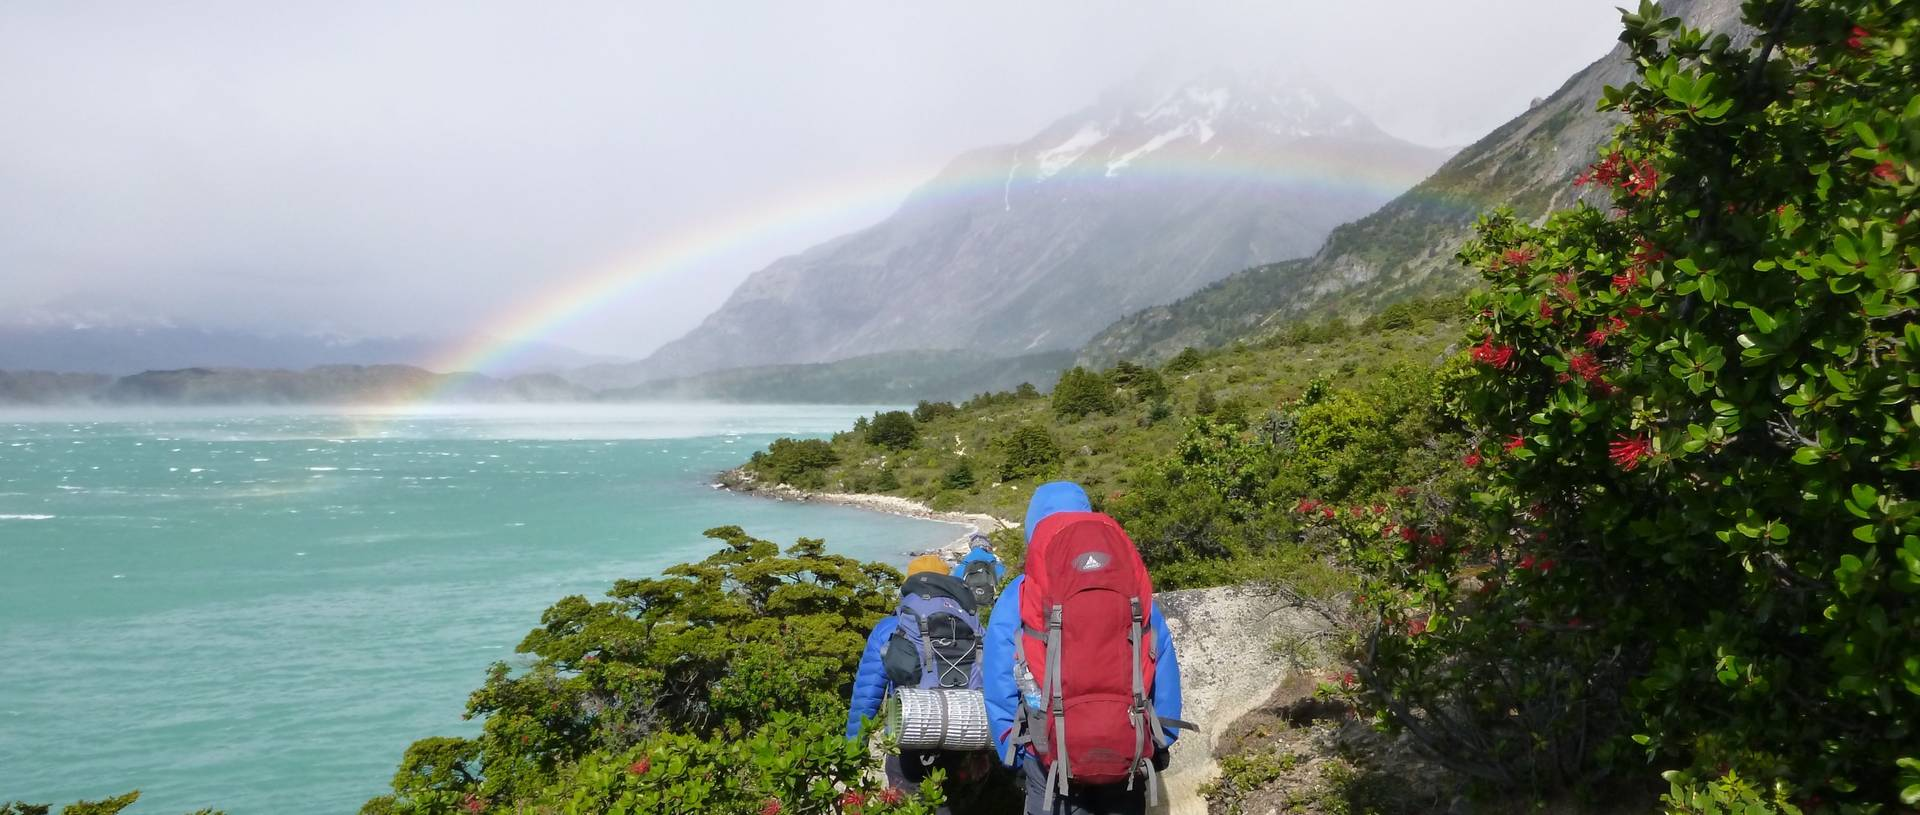 Hiking Through Torres Del Paine National Park